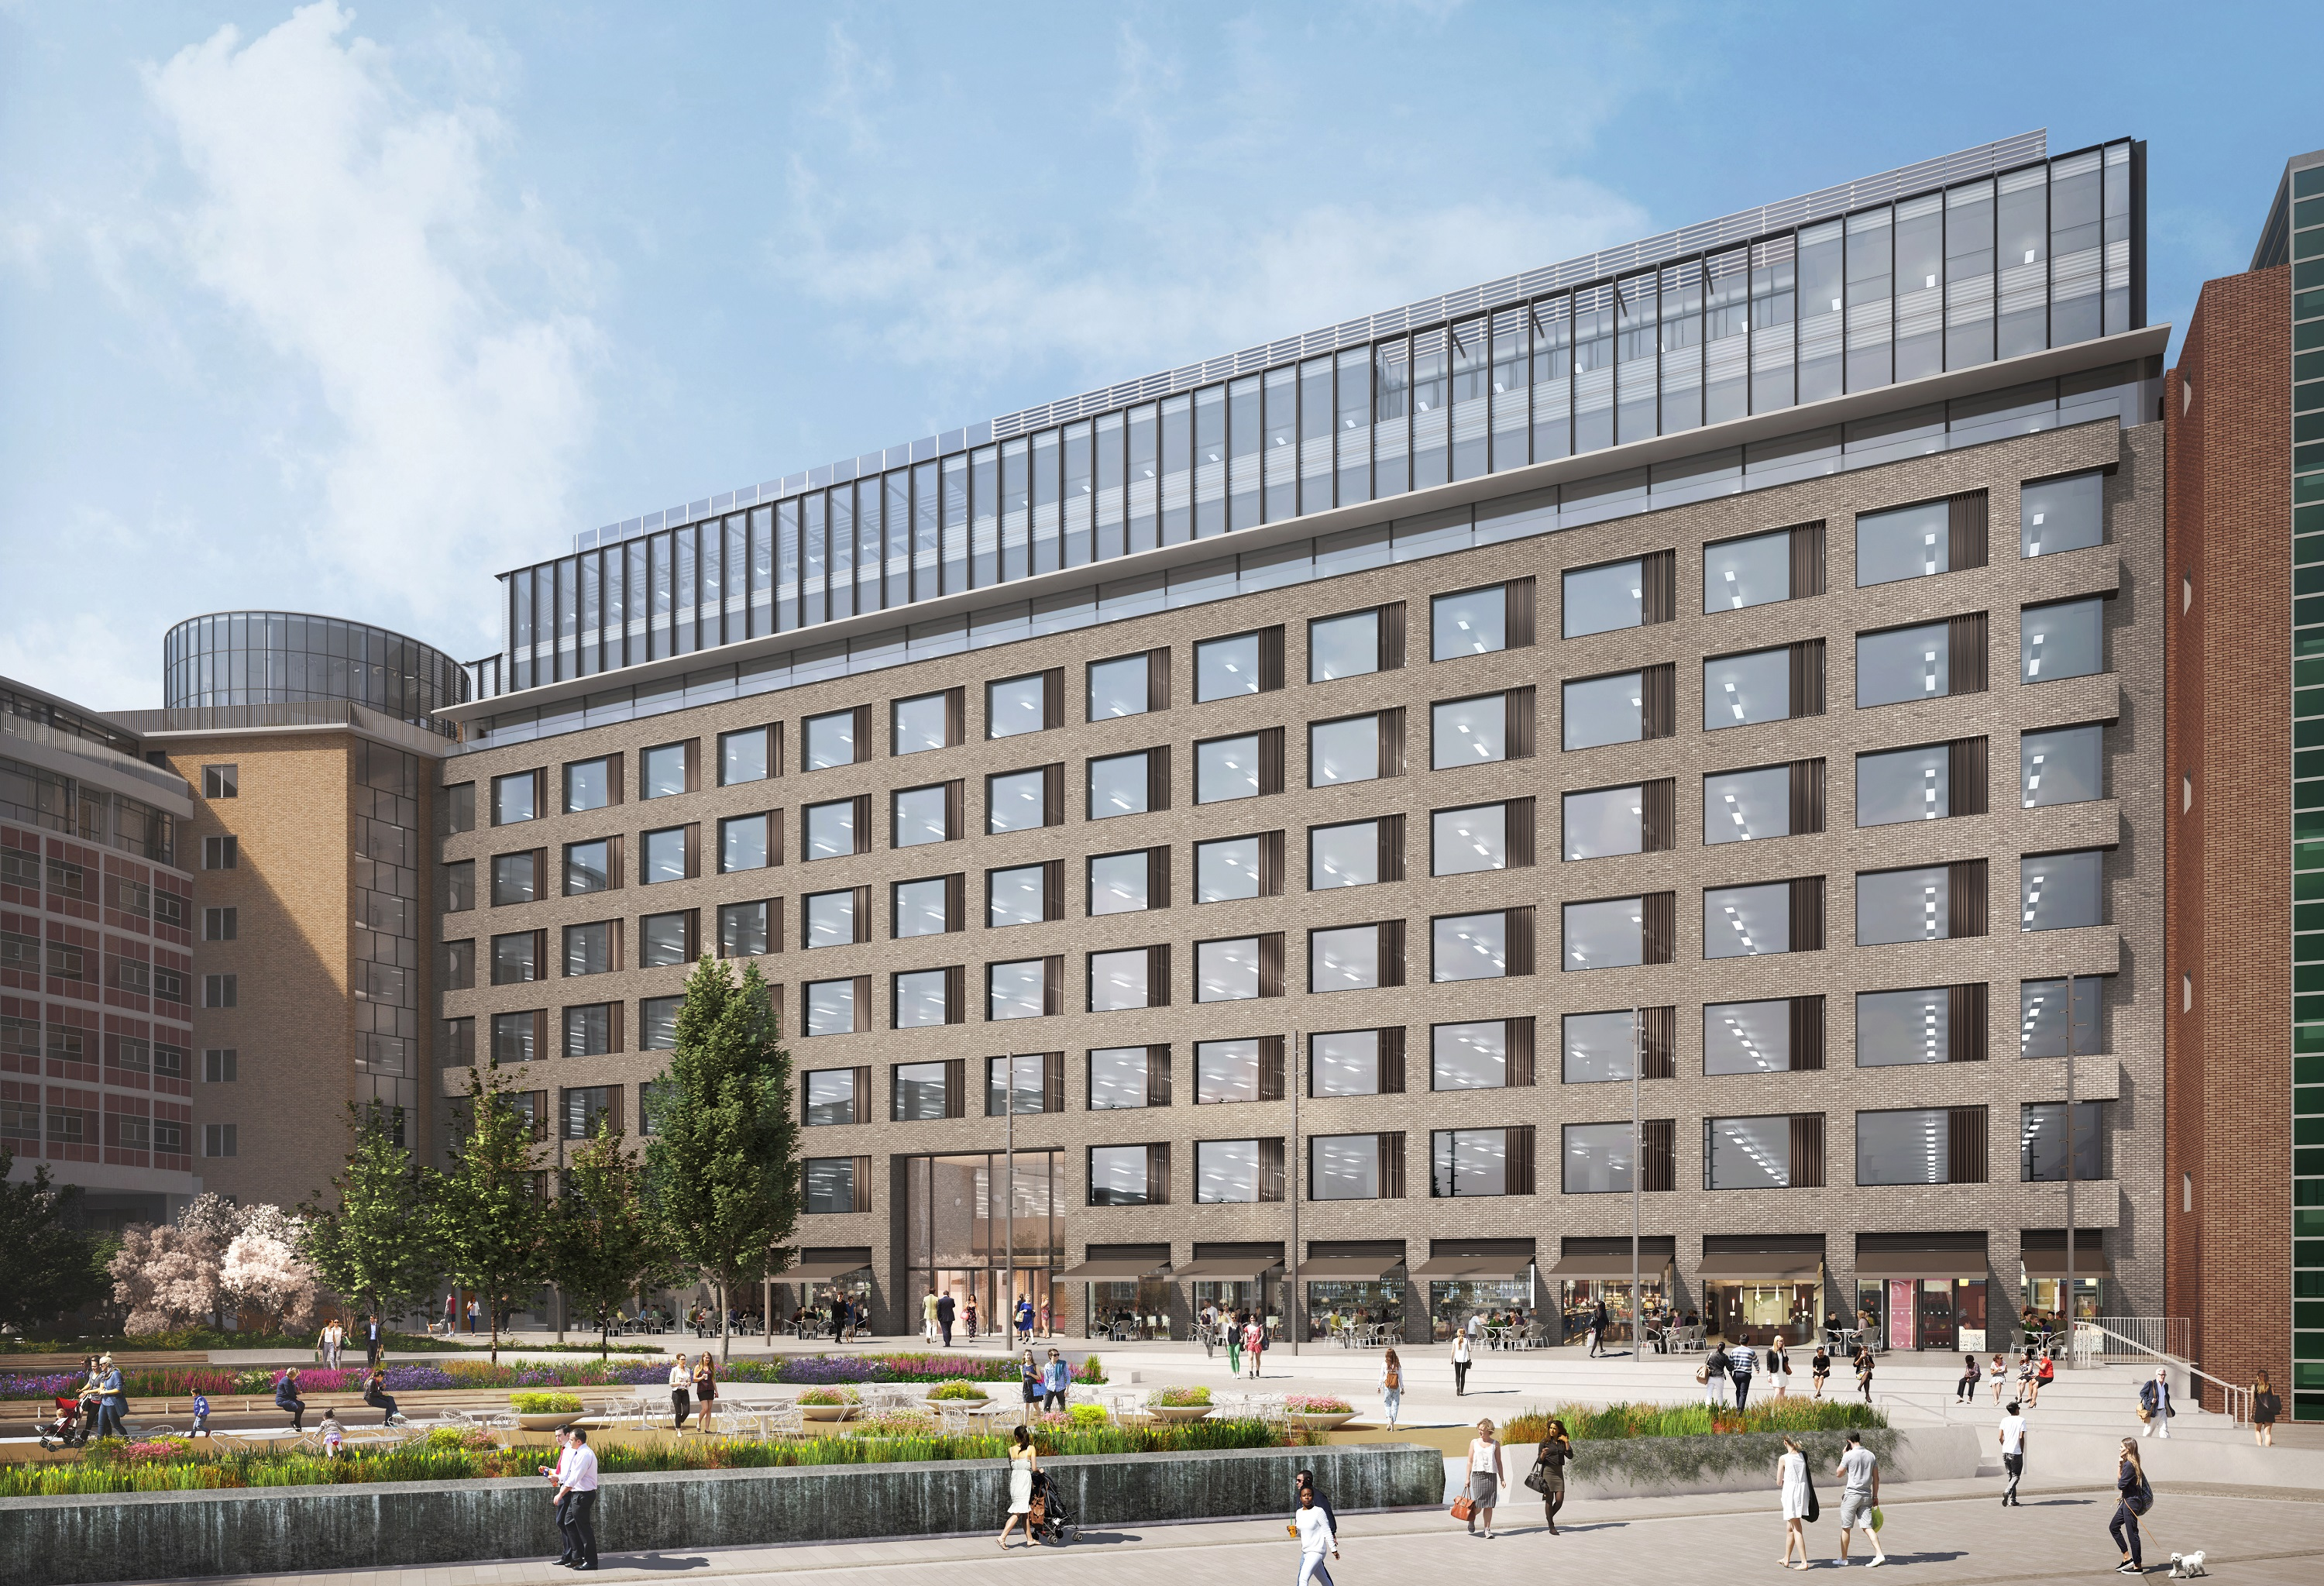 White City BBC Television Centre is the venue for London's latest restaurant hall and food court